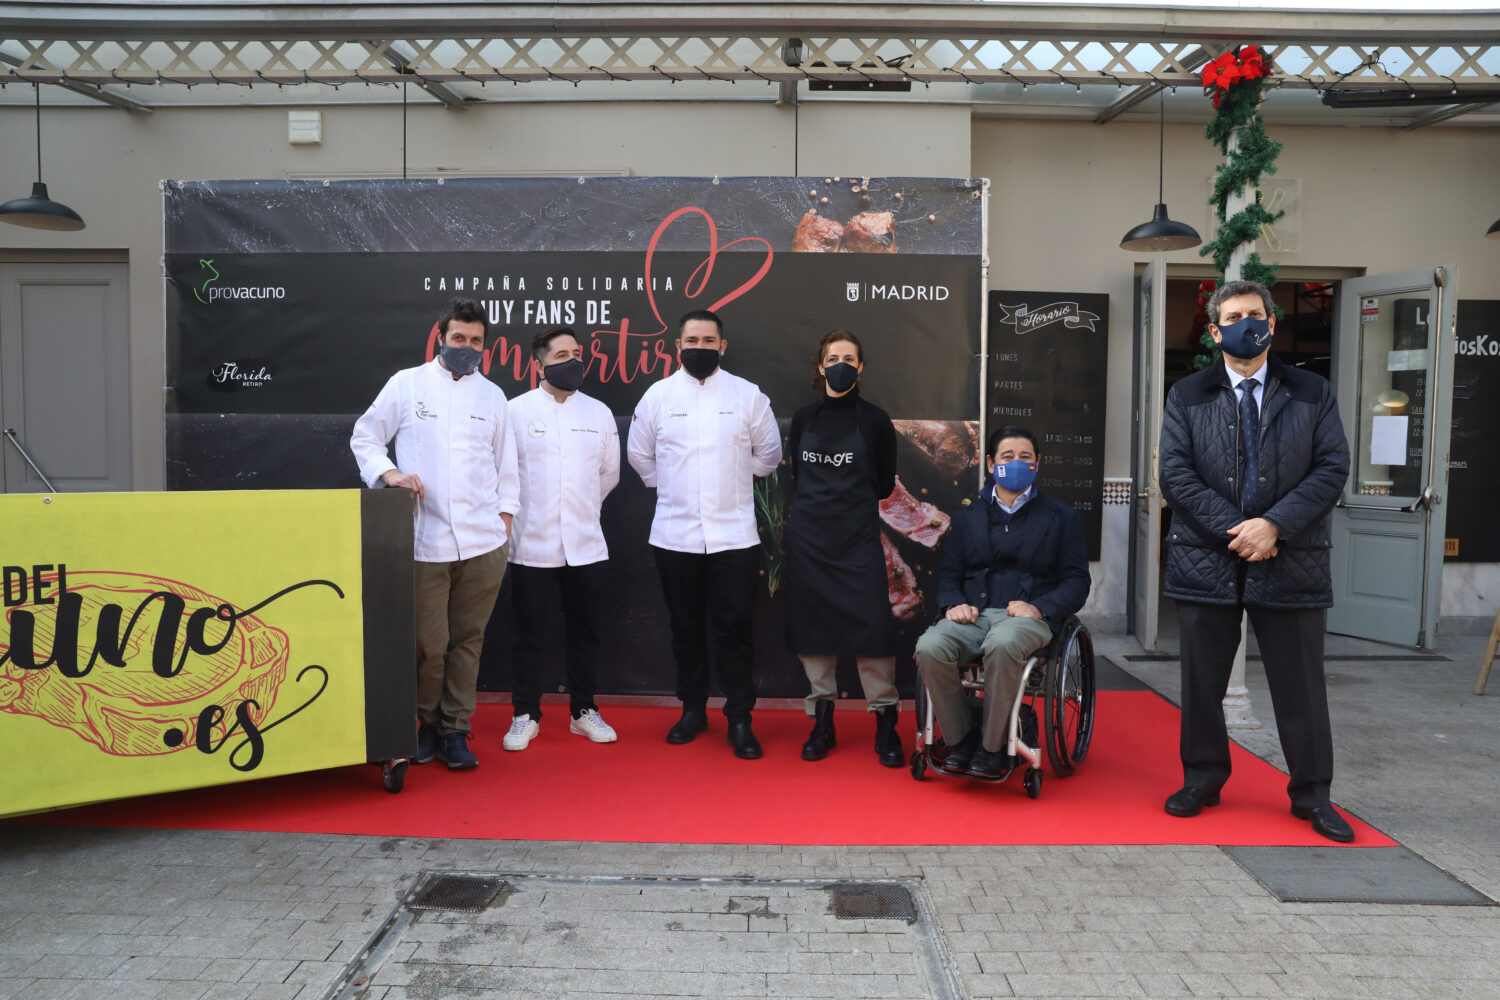 Madrid City Council And Provacuno Distribute 1,000 Meals With Beef Cooked By Michelin Stars For People In Need